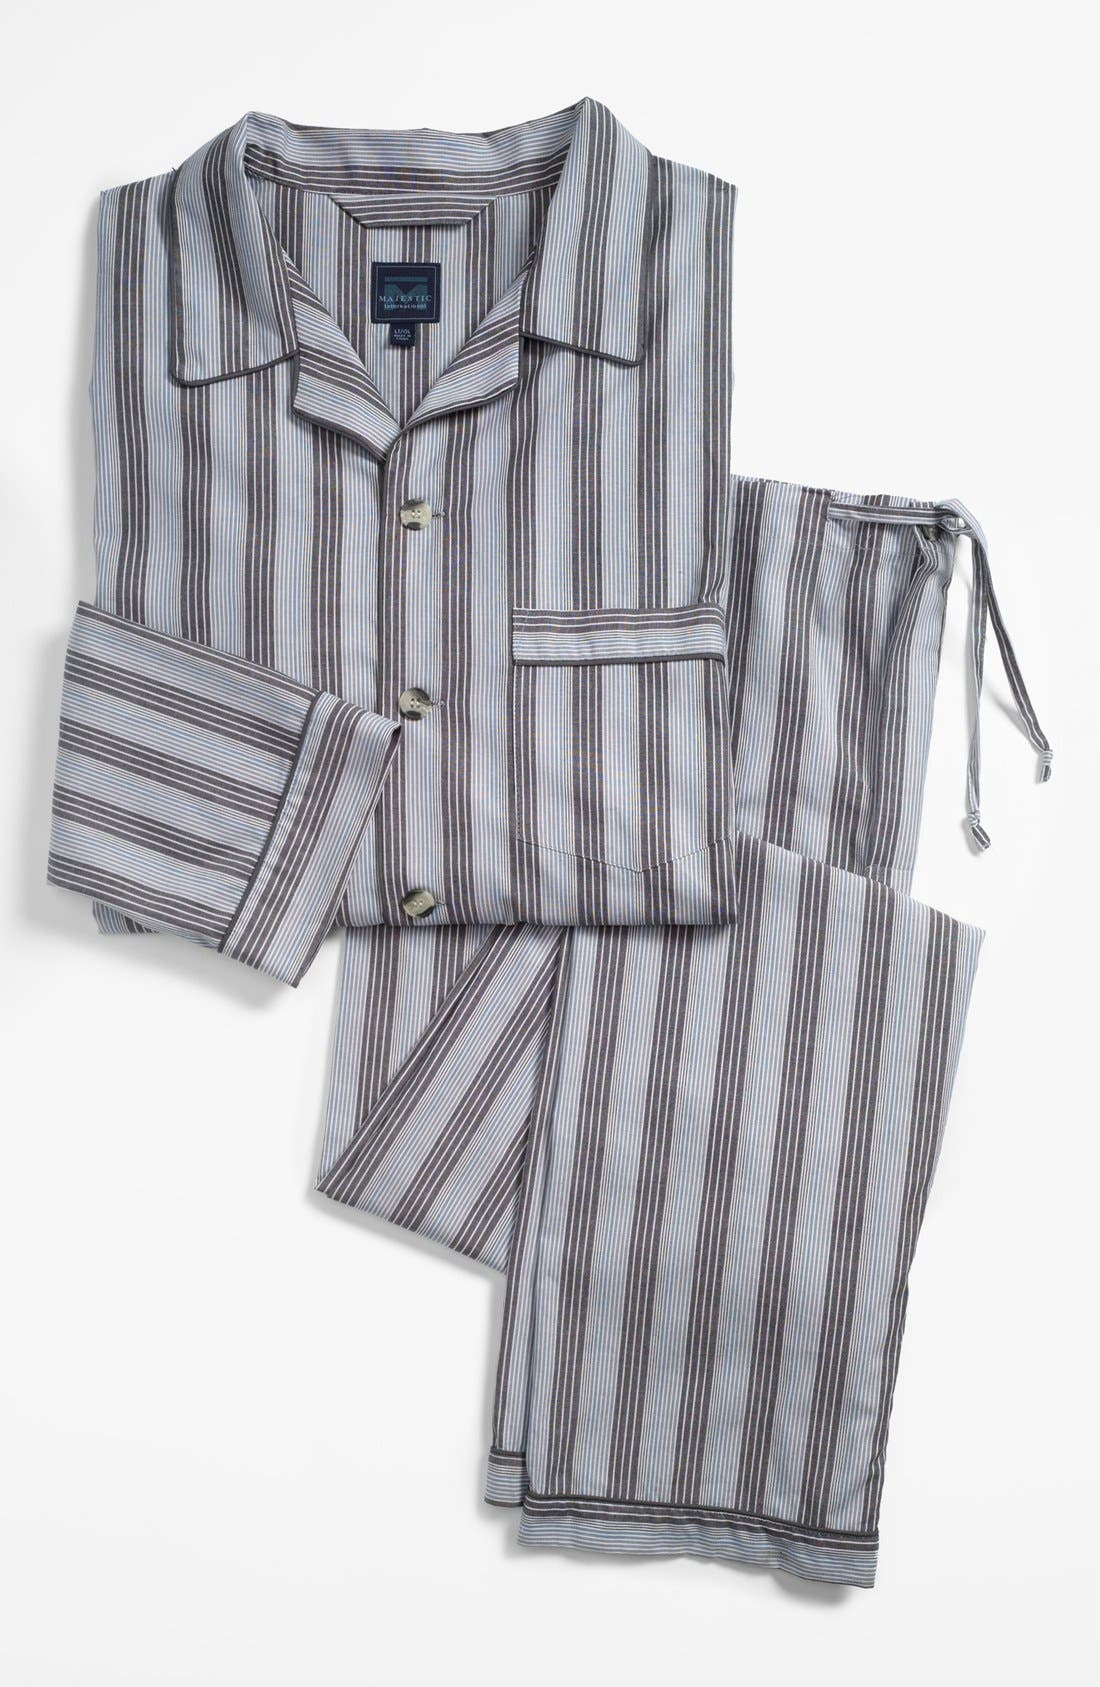 Alternate Image 1 Selected - Majestic International 'Westin' Pajamas (Big & Tall)